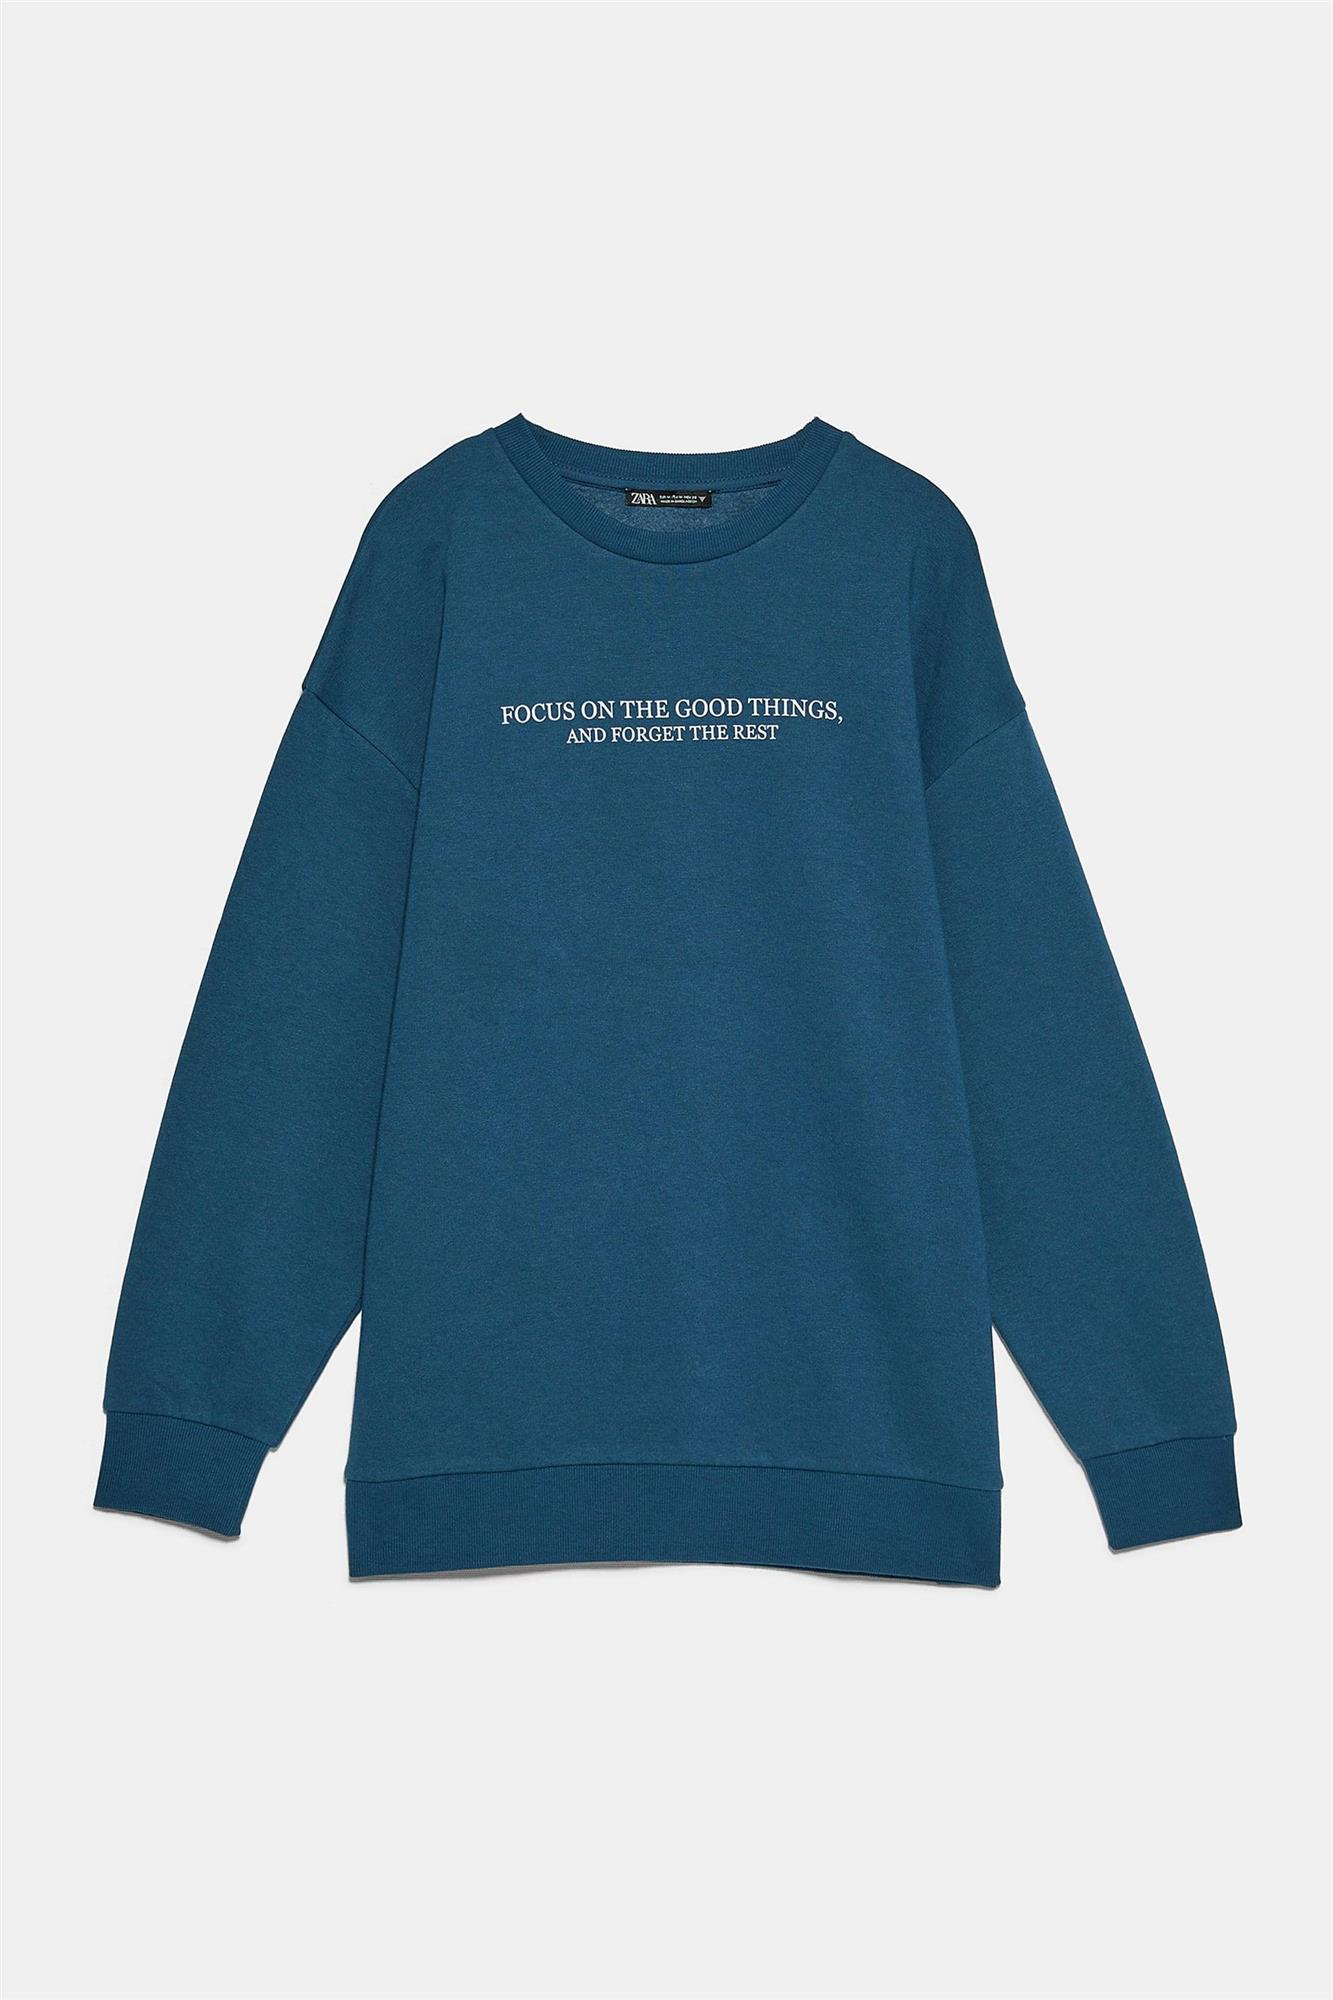 "Sudadera con mensaje ""Focus on the good things, and forget the rest"" de Zara"